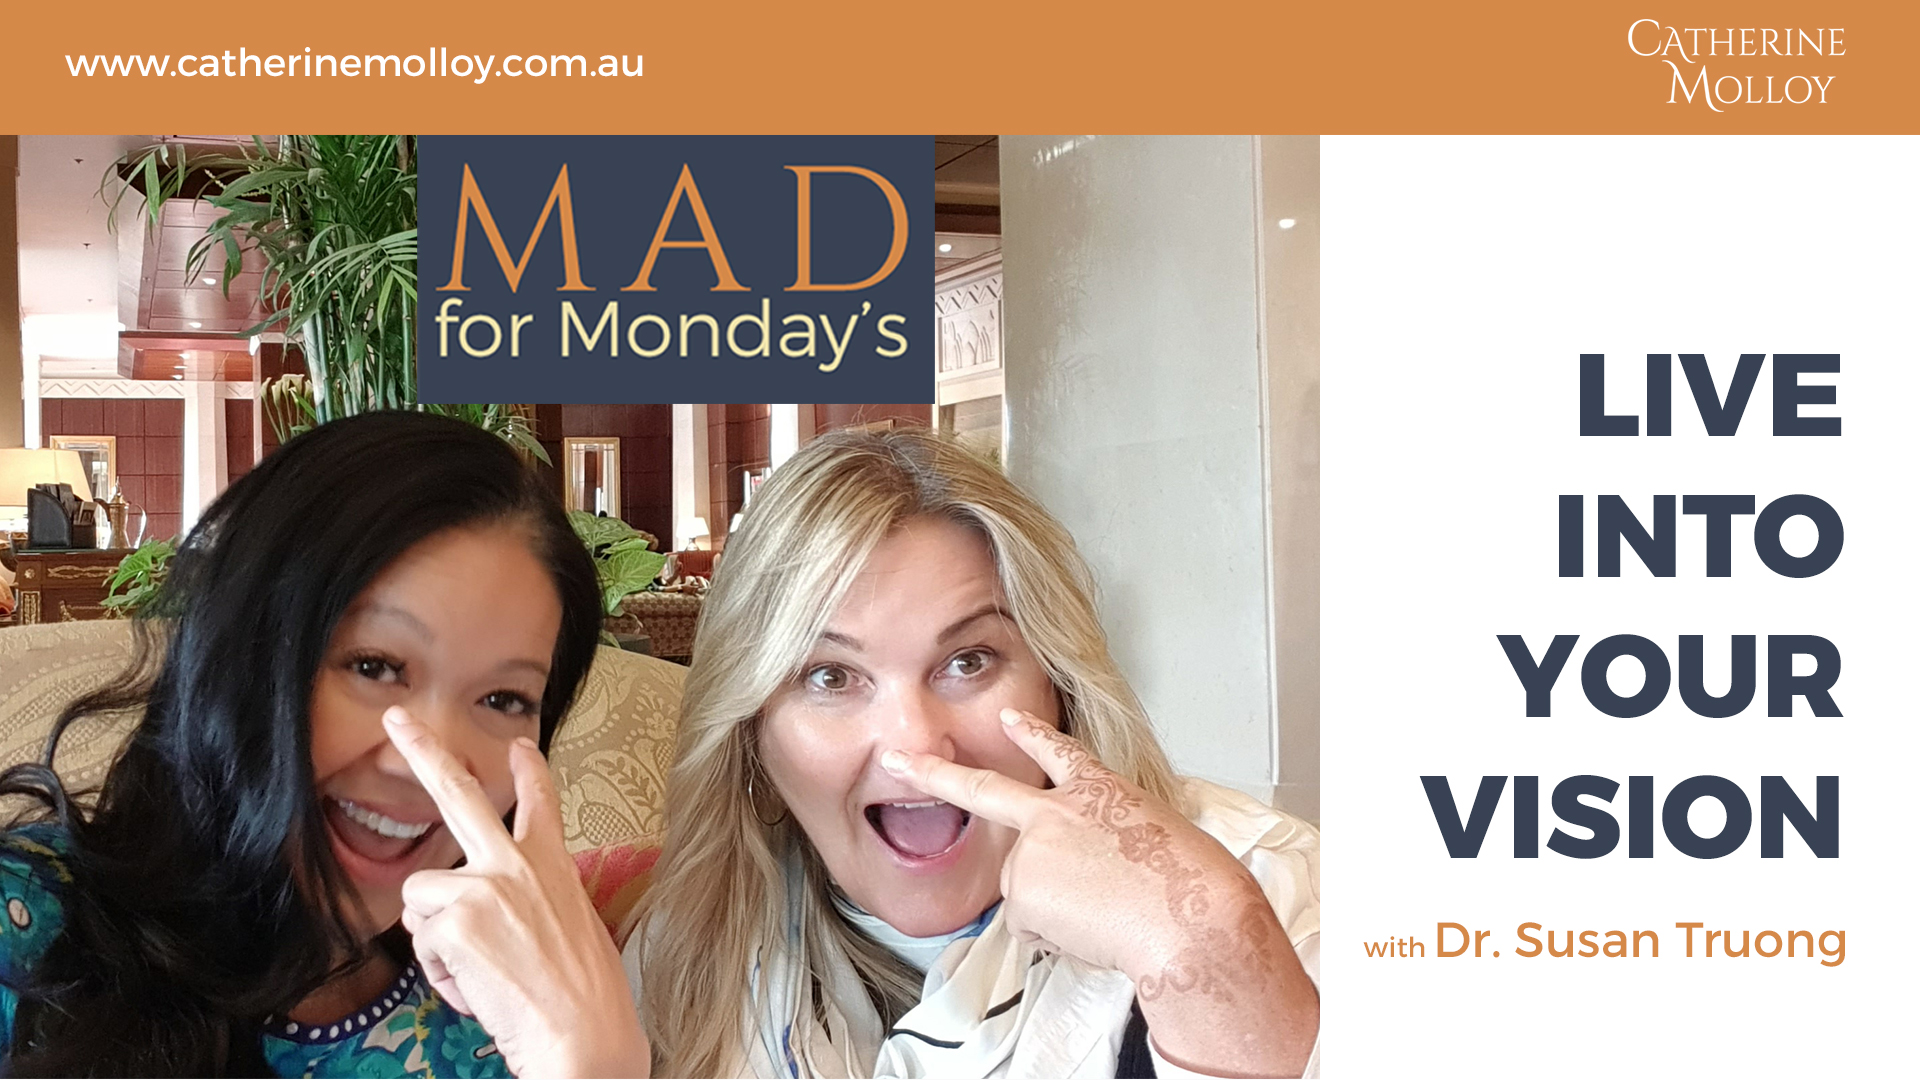 MAD for Monday's – Live Into Your Vision